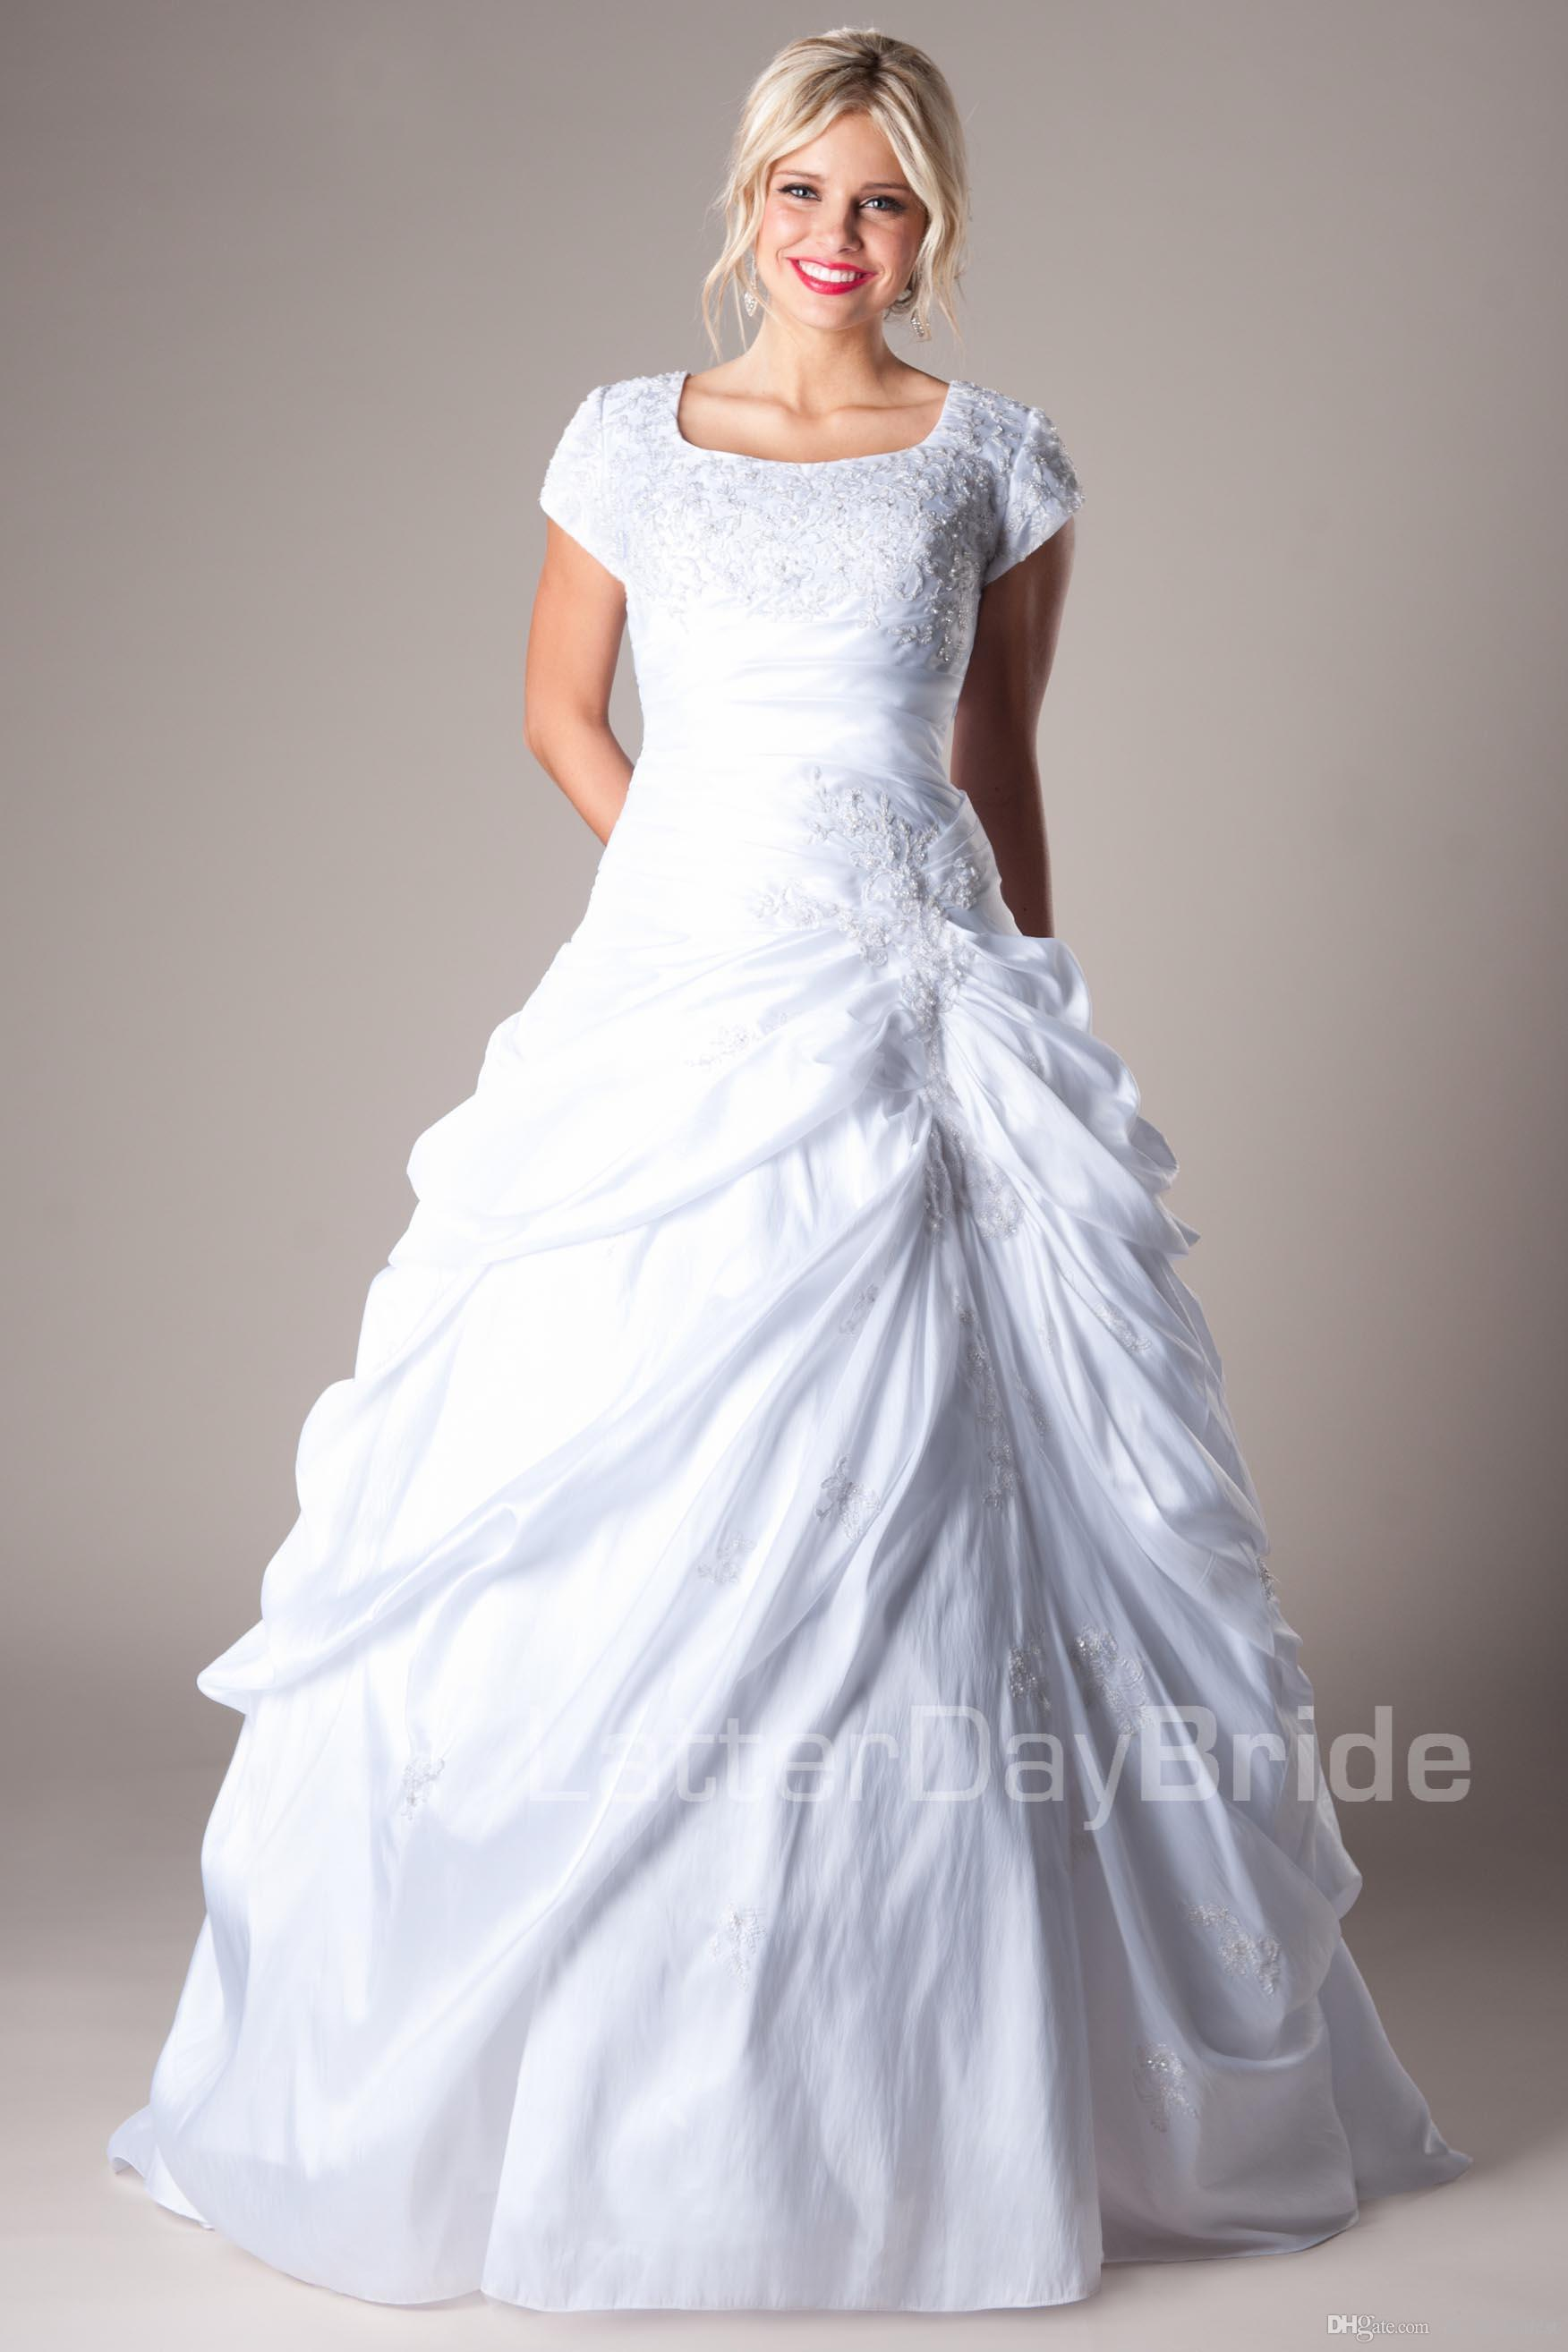 Classic White Ball Gown Modest Wedding Dresses Cap Sleeves ...